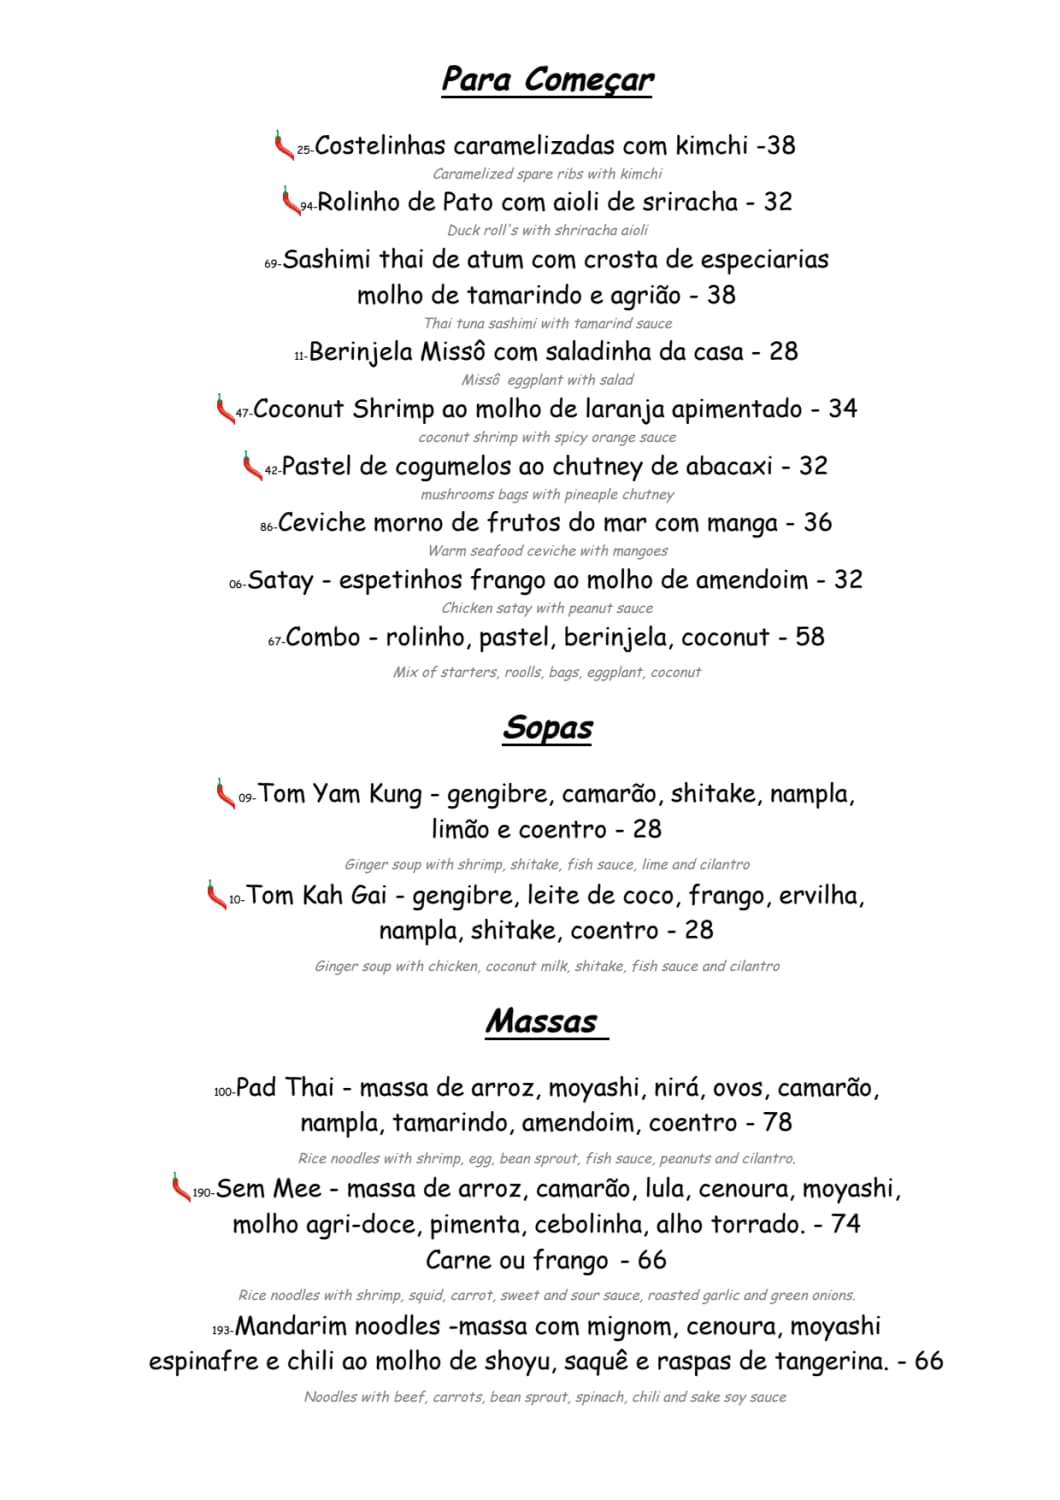 Menu do restaurante Sawasdee (Leblon) - Página 1